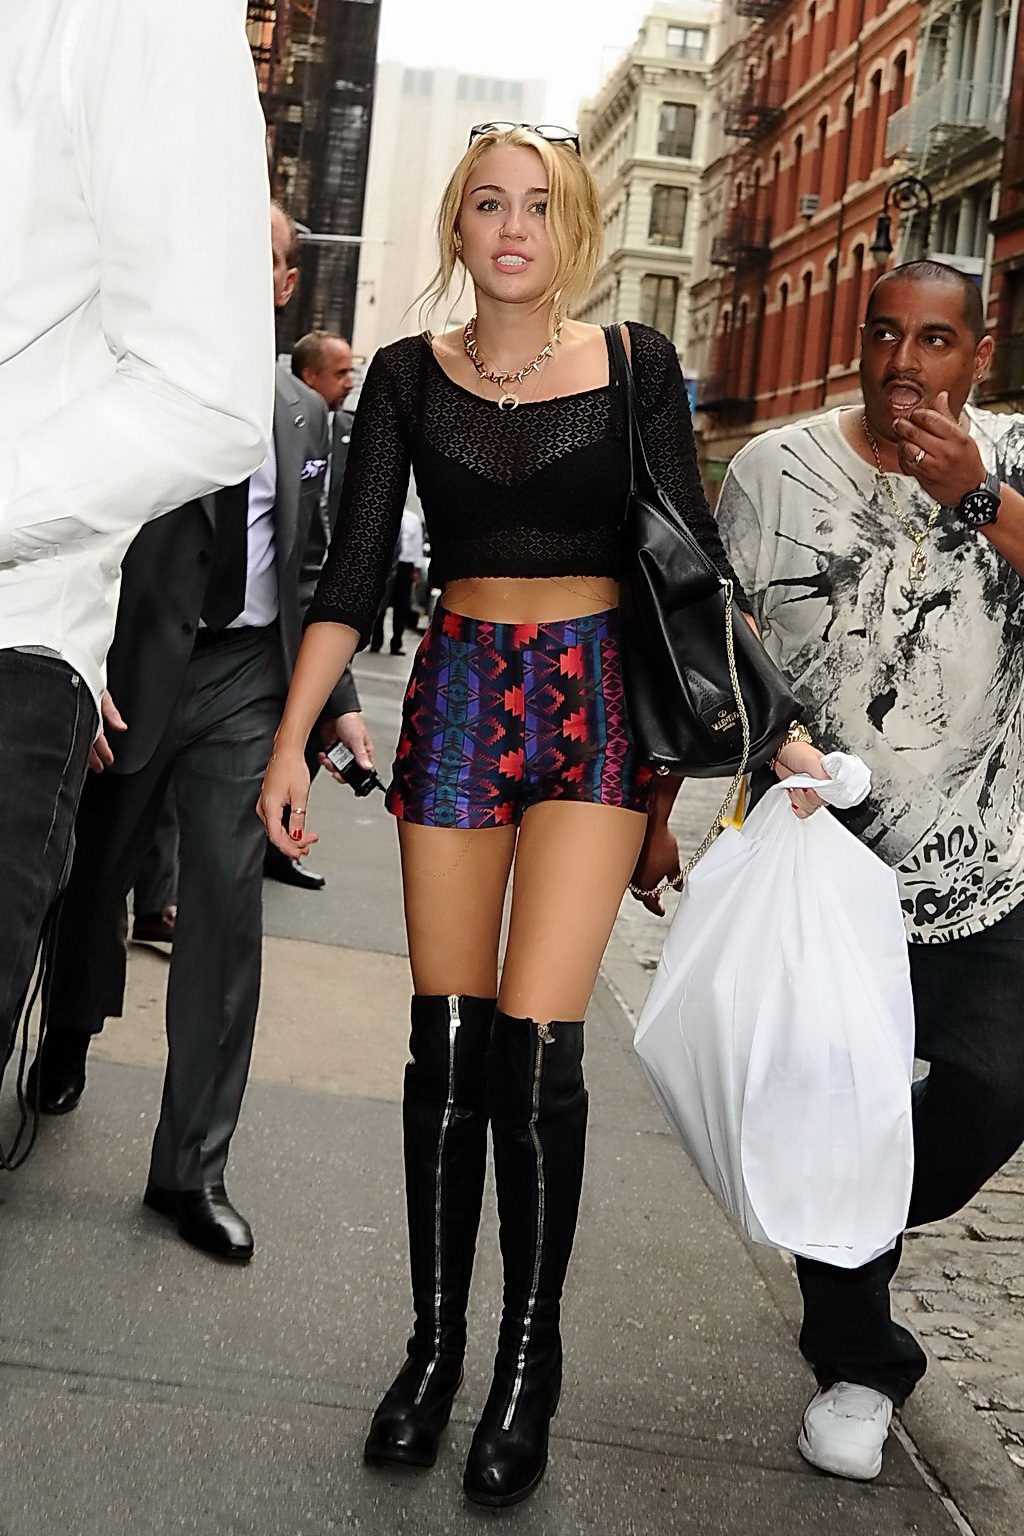 Miley Cyrus busty wearing see-thru belly top and shorts while buying